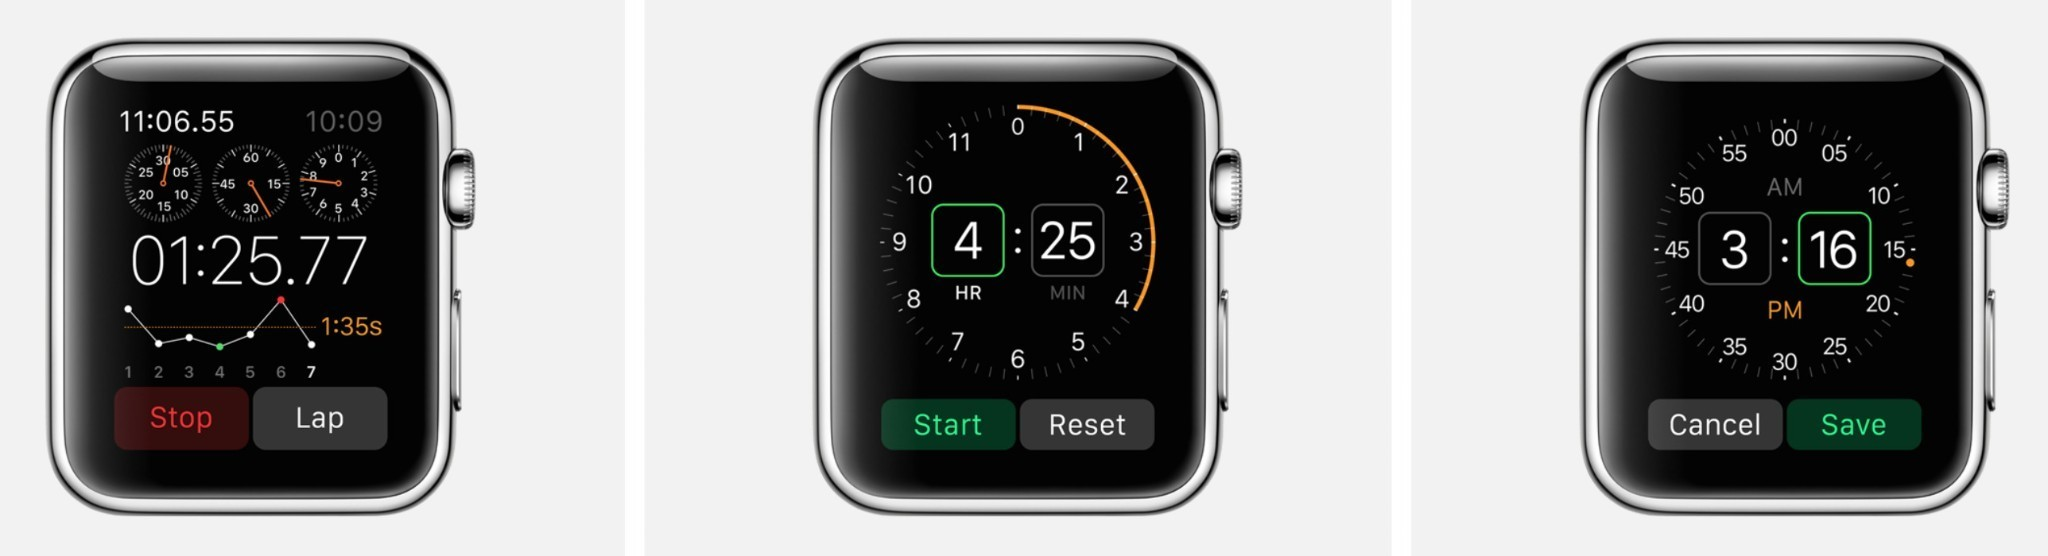 Jony Ive says Apple Watch will include Fitbit-like silent alarm clock feature to wake you up